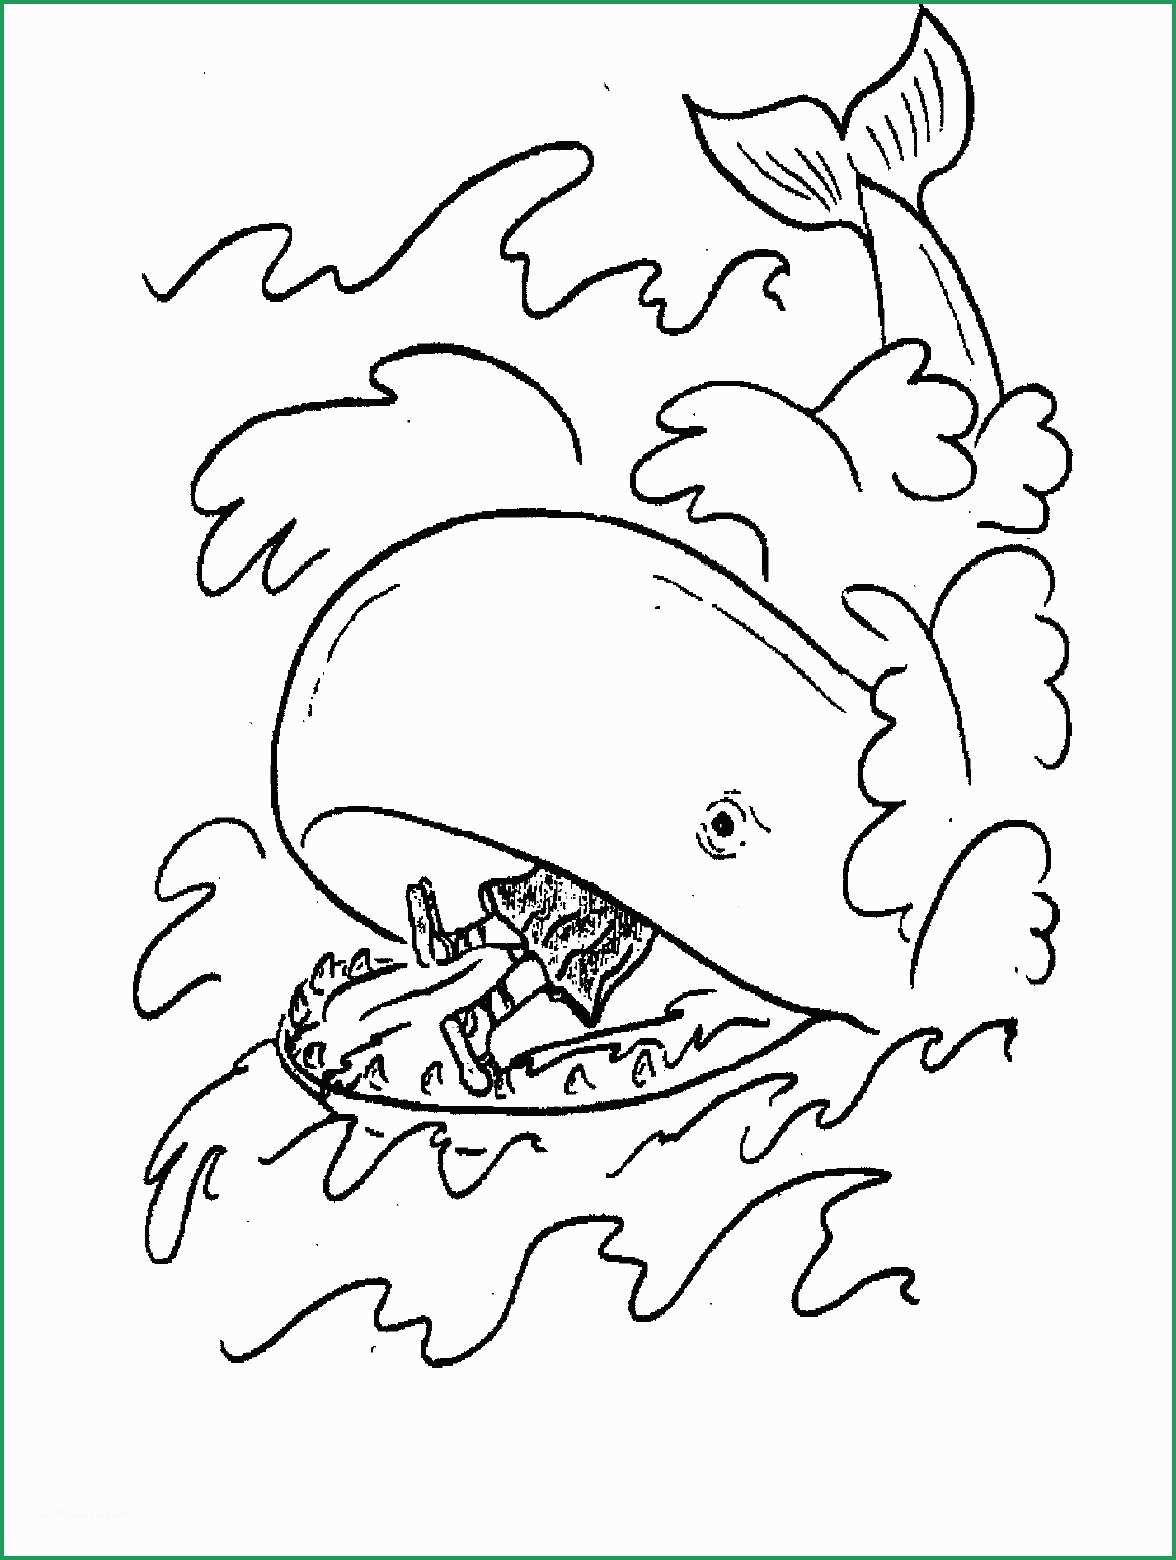 graphic regarding Free Printable Jonah and the Whale Coloring Pages referred to as Jonah And The Whale Coloring Webpage Absolutely free Bible Tale Coloring